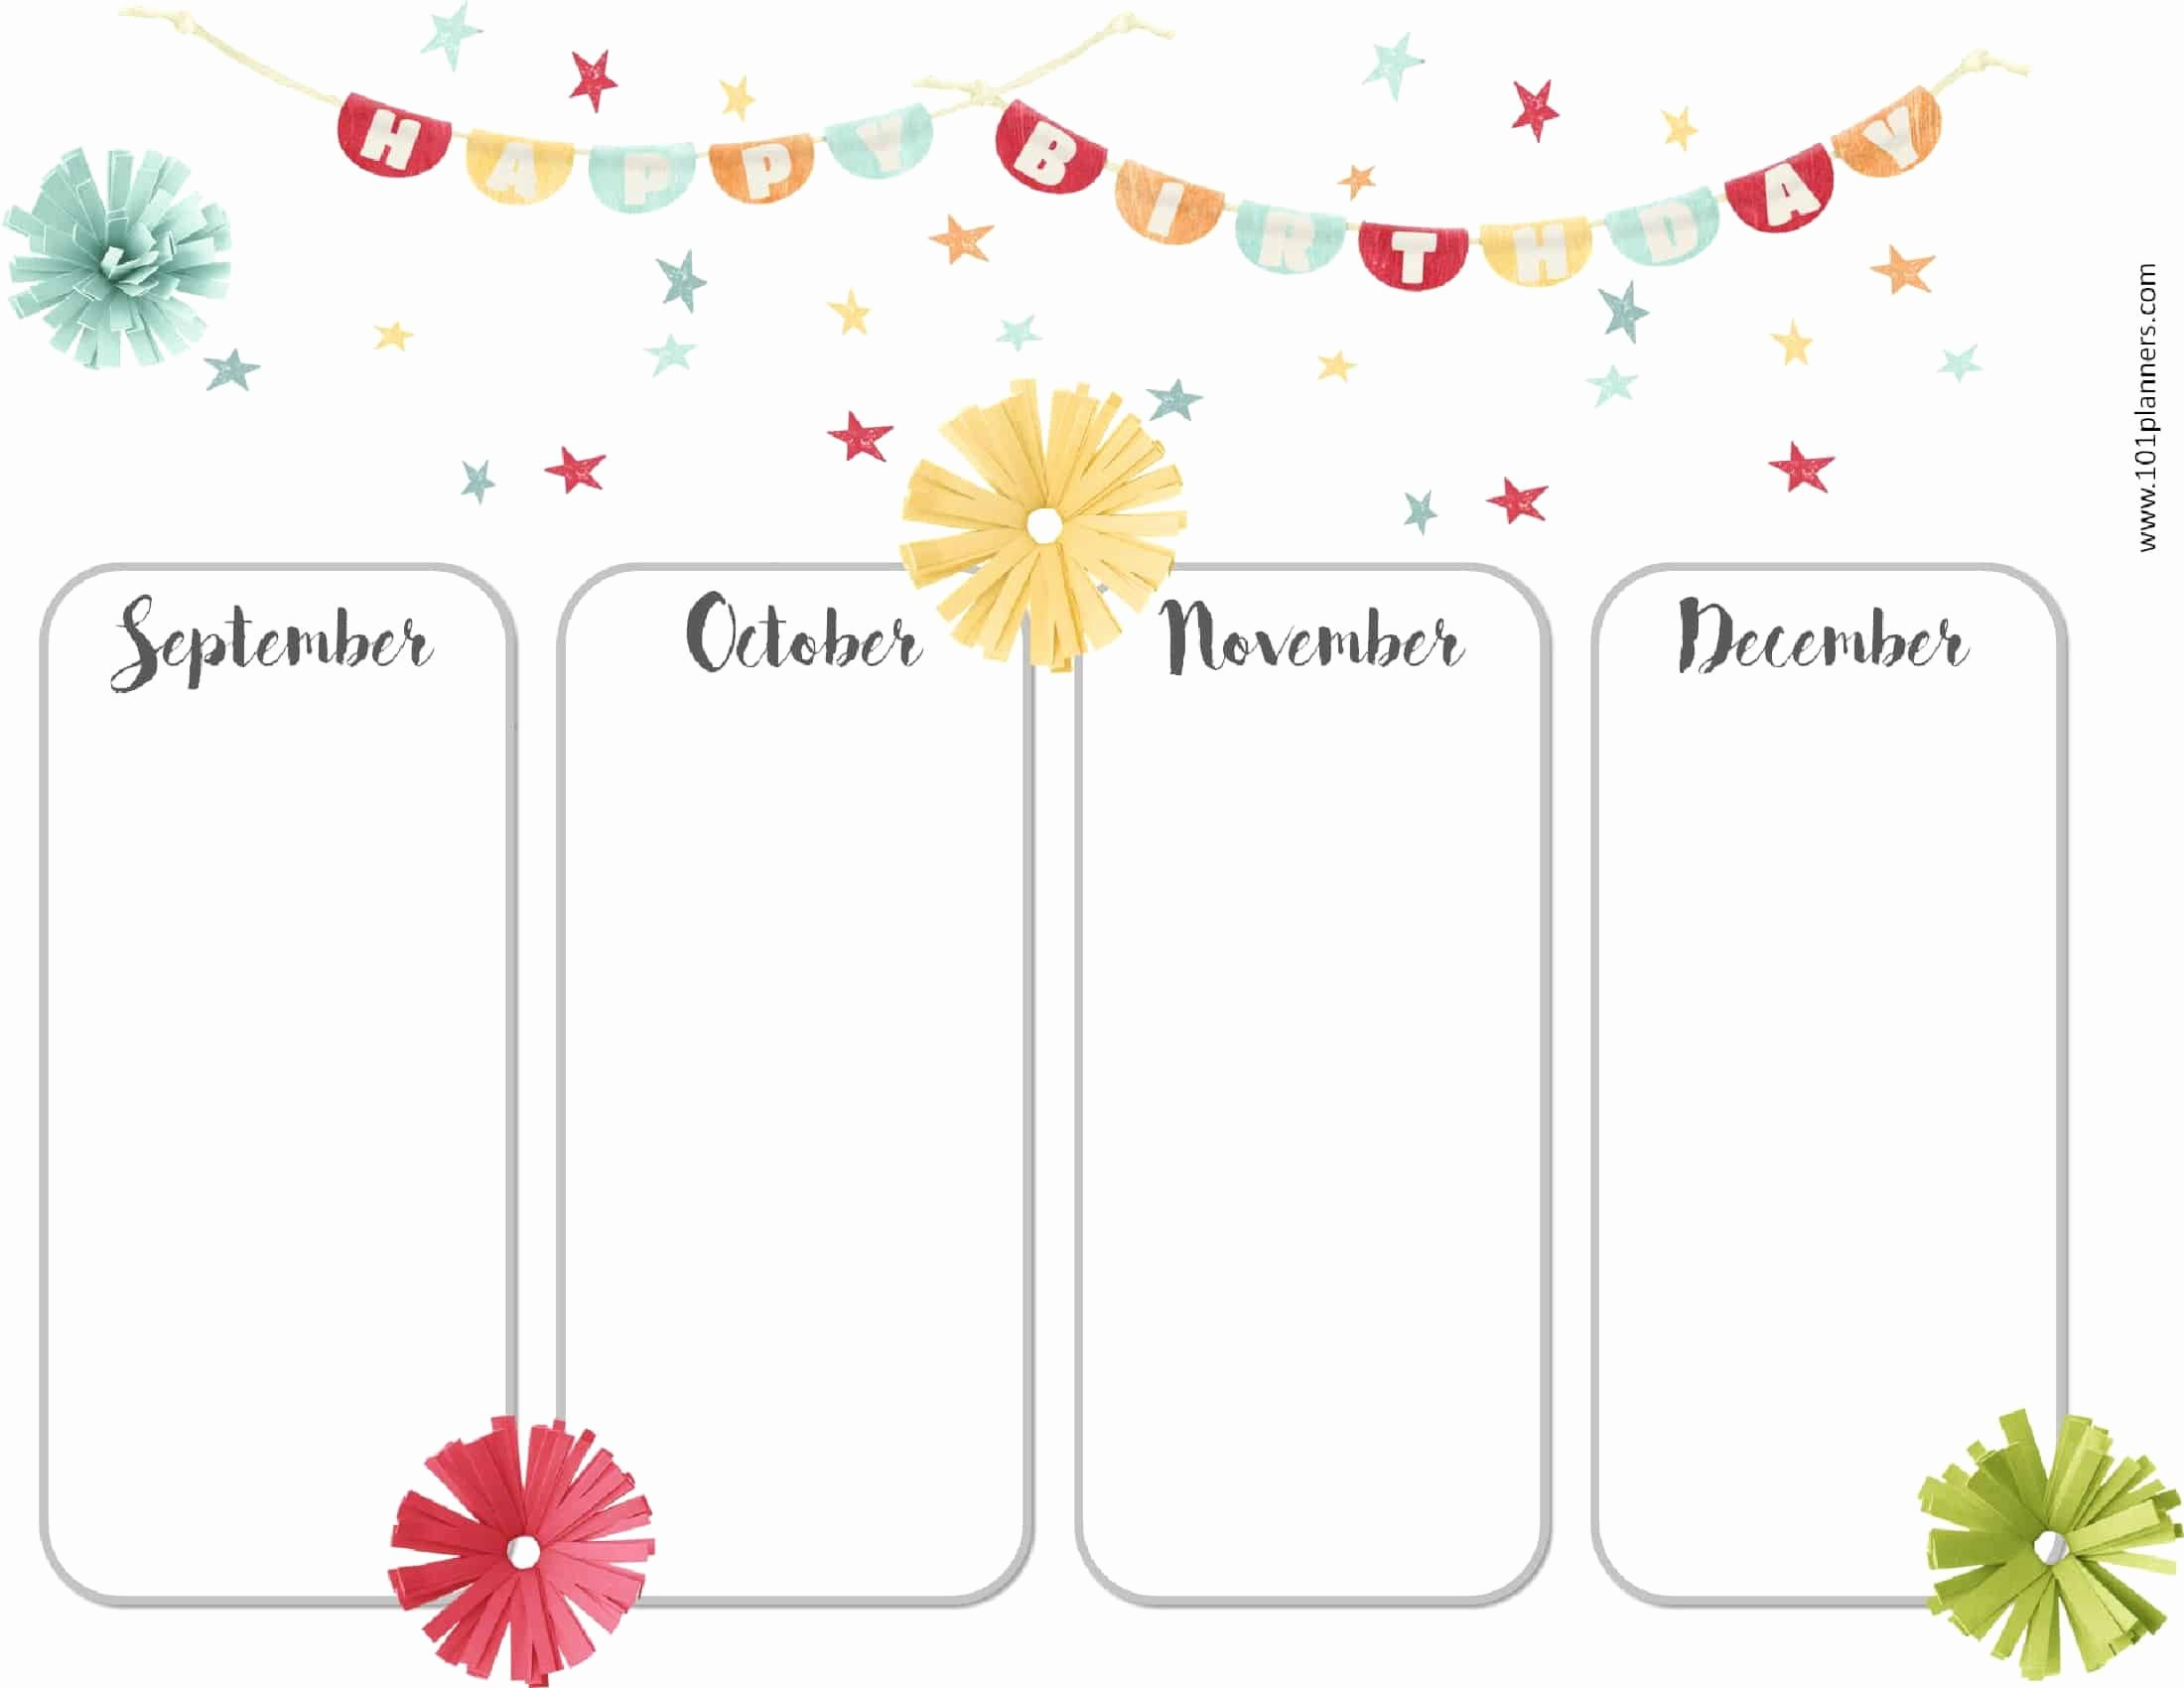 Printable Birthday Calendar Template Elegant Free Birthday Calendar Printable & Customizable